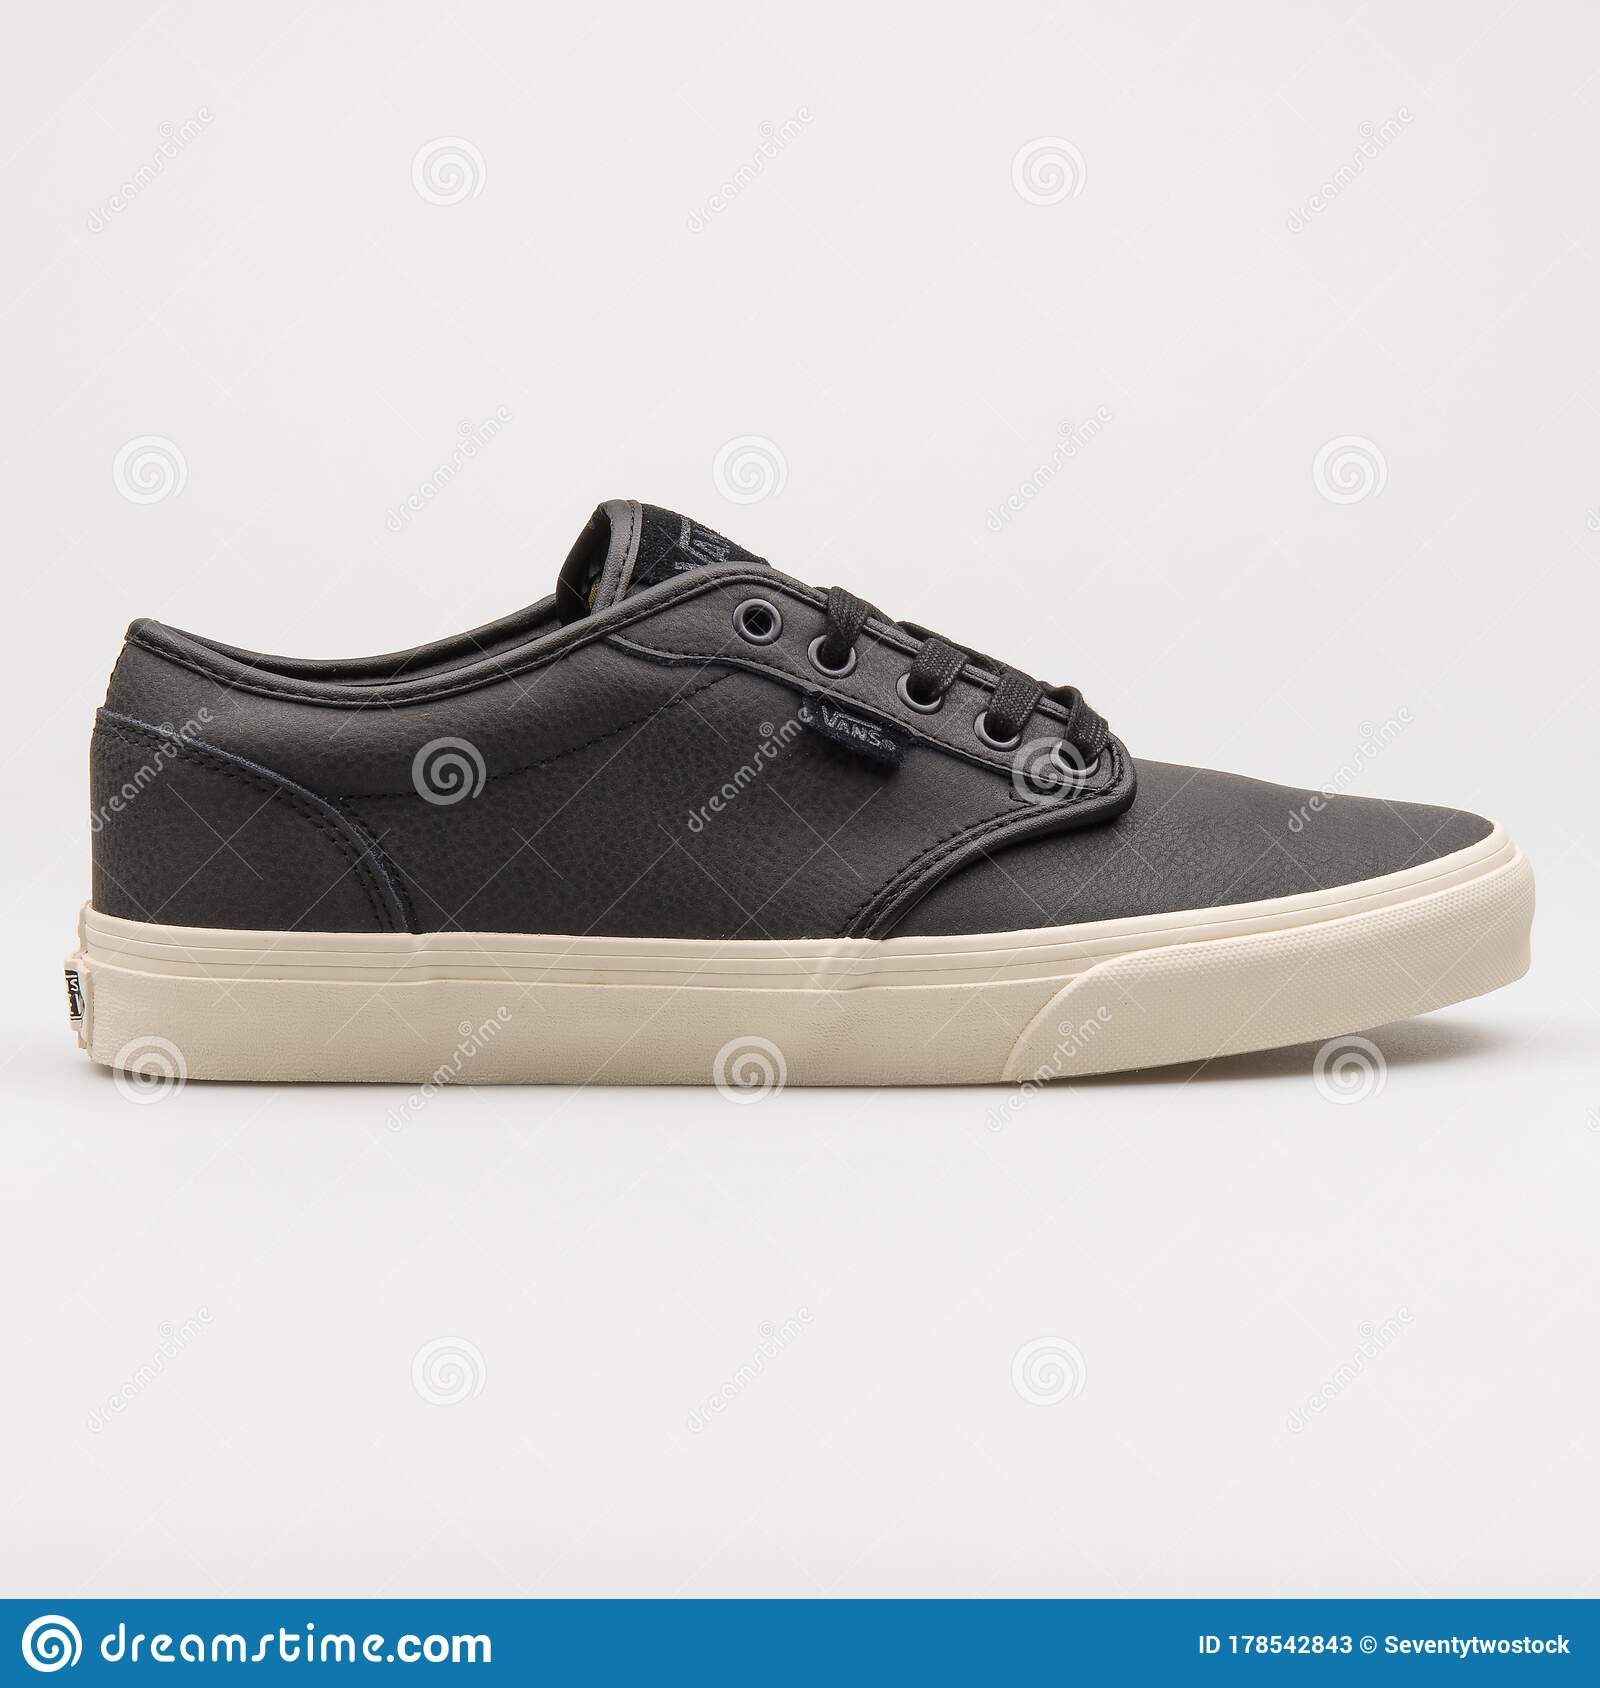 Vans Atwood Leather Black And Beige Sneaker Editorial Stock ...